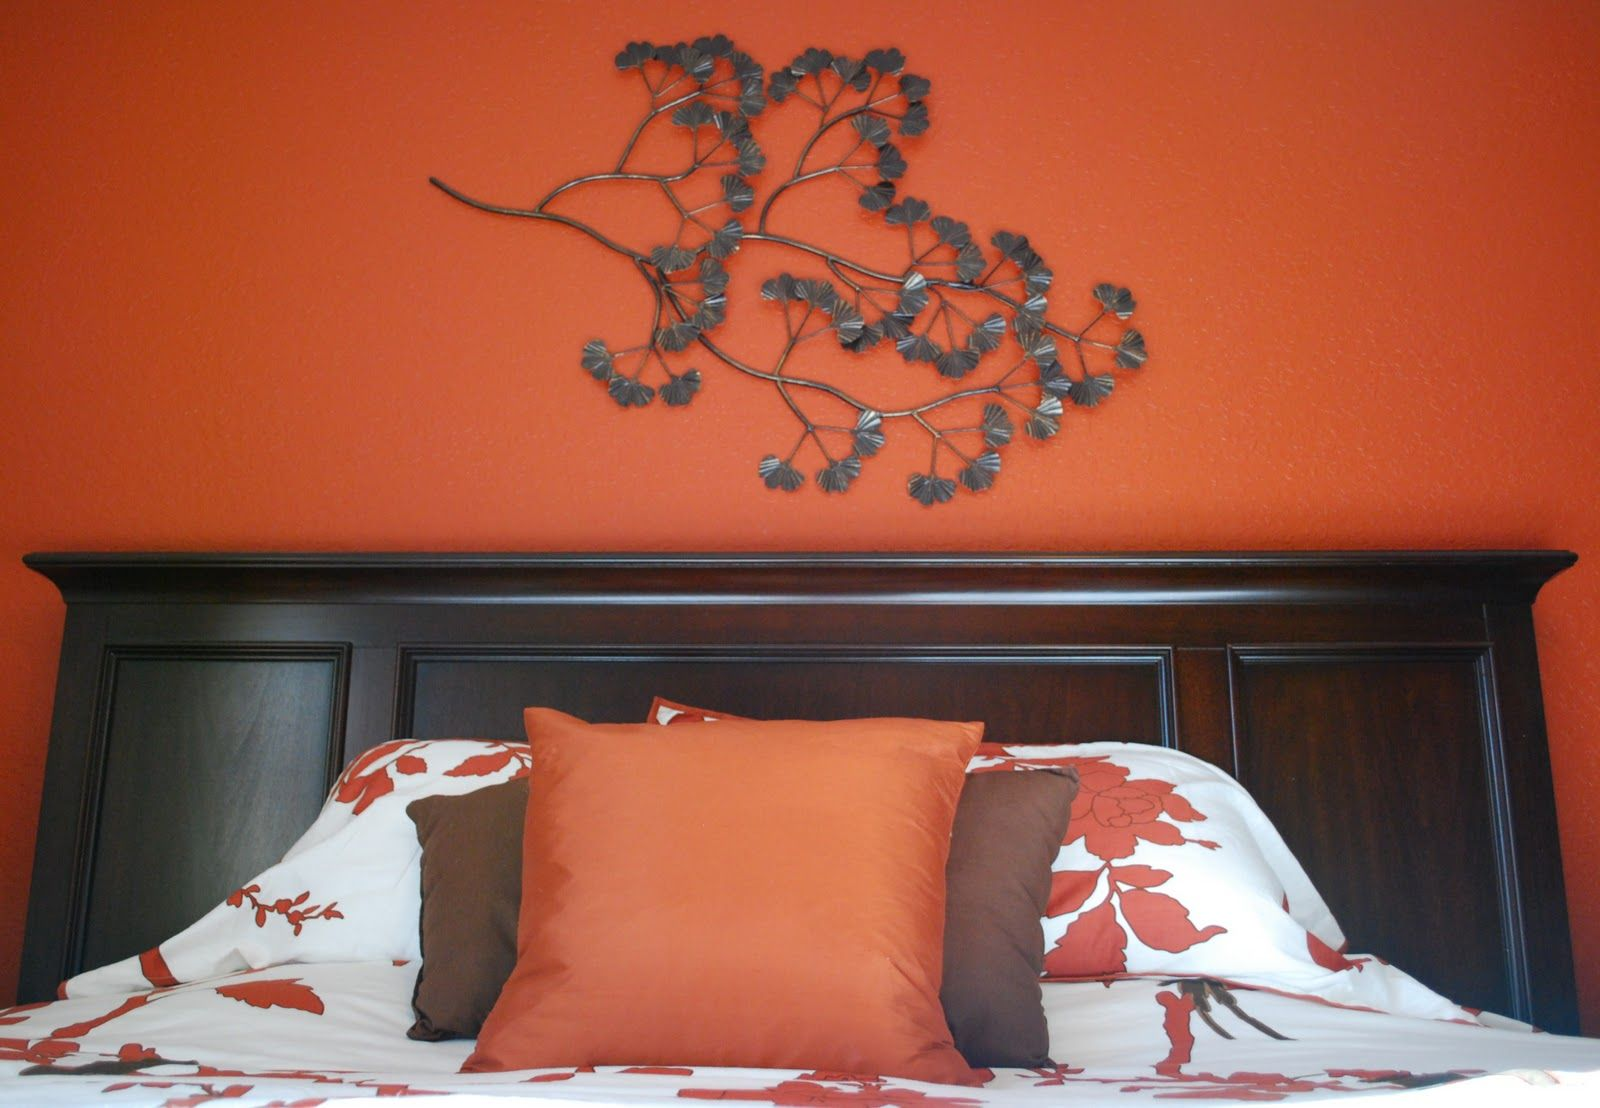 Burnt Orange Bedroom Wall With Brown And White Accents Bedroom Orange Orange Bedroom Walls Orange Bedroom Decor